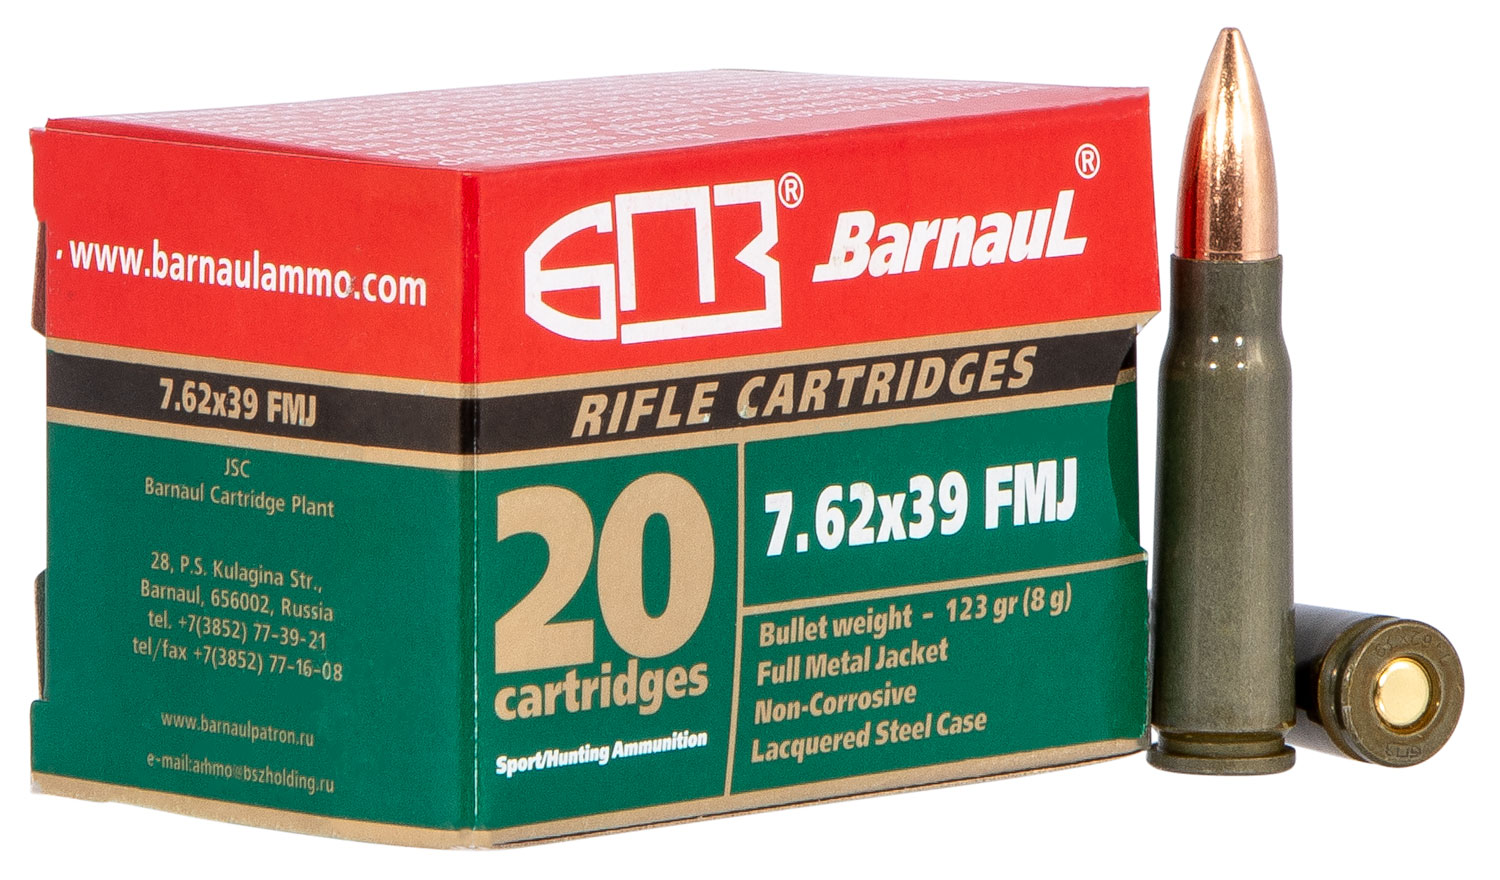 Barnaul Ammo 762X39FMJ123   7.62X39mm 123 GR Full Metal Jacket 20 Bx/ 25 Cs (500 Rounds Total)